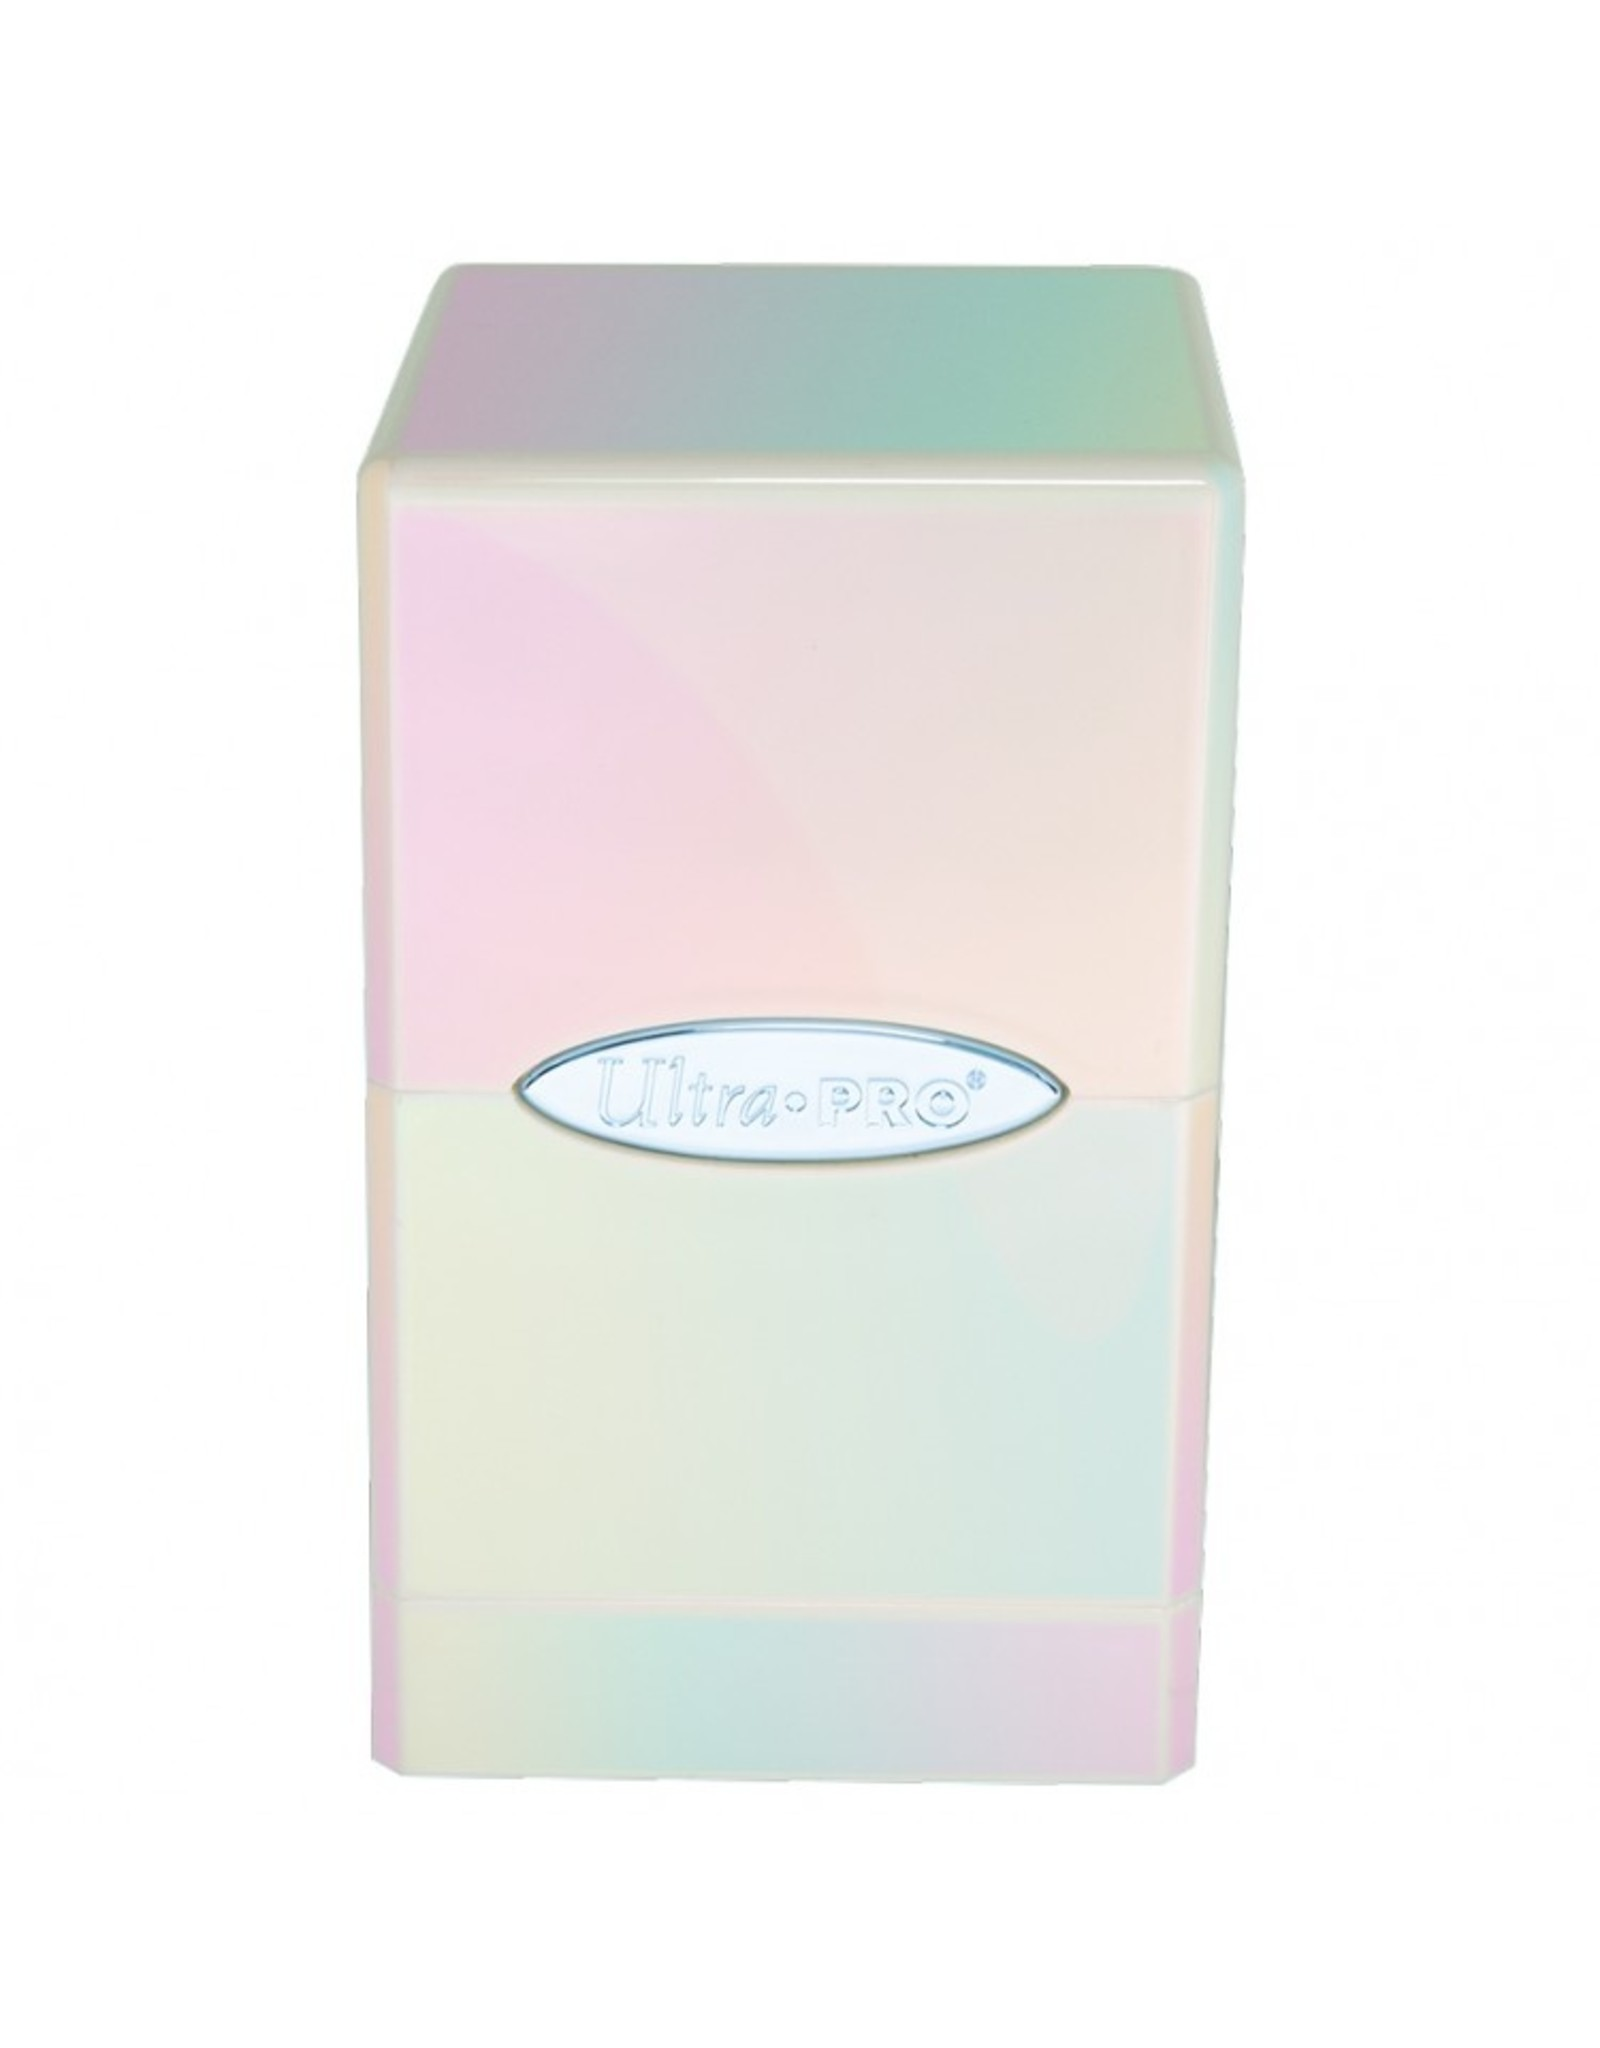 Ultra Pro Deck Box: Satin Tower: Hi-Gloss Iridescent